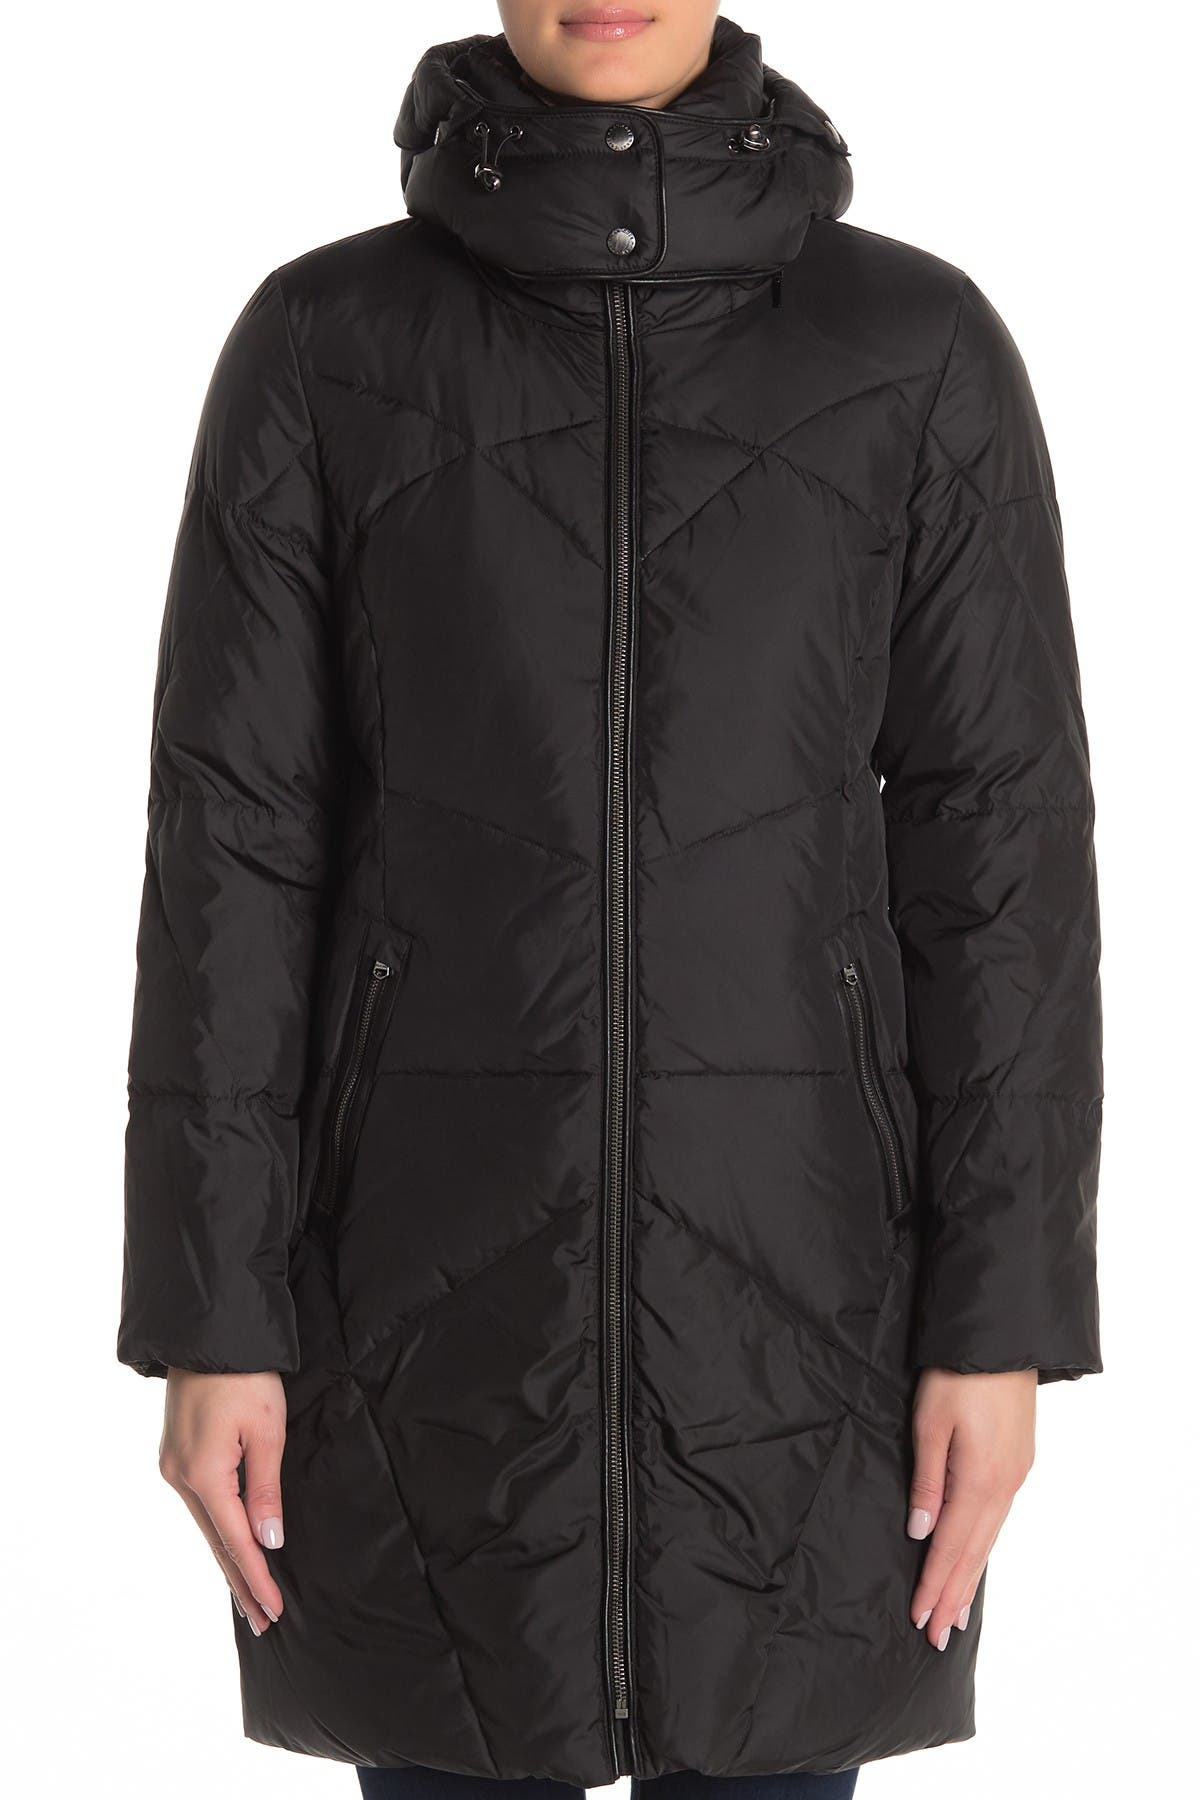 Cole Haan Padded Stitch Puffer Jacket